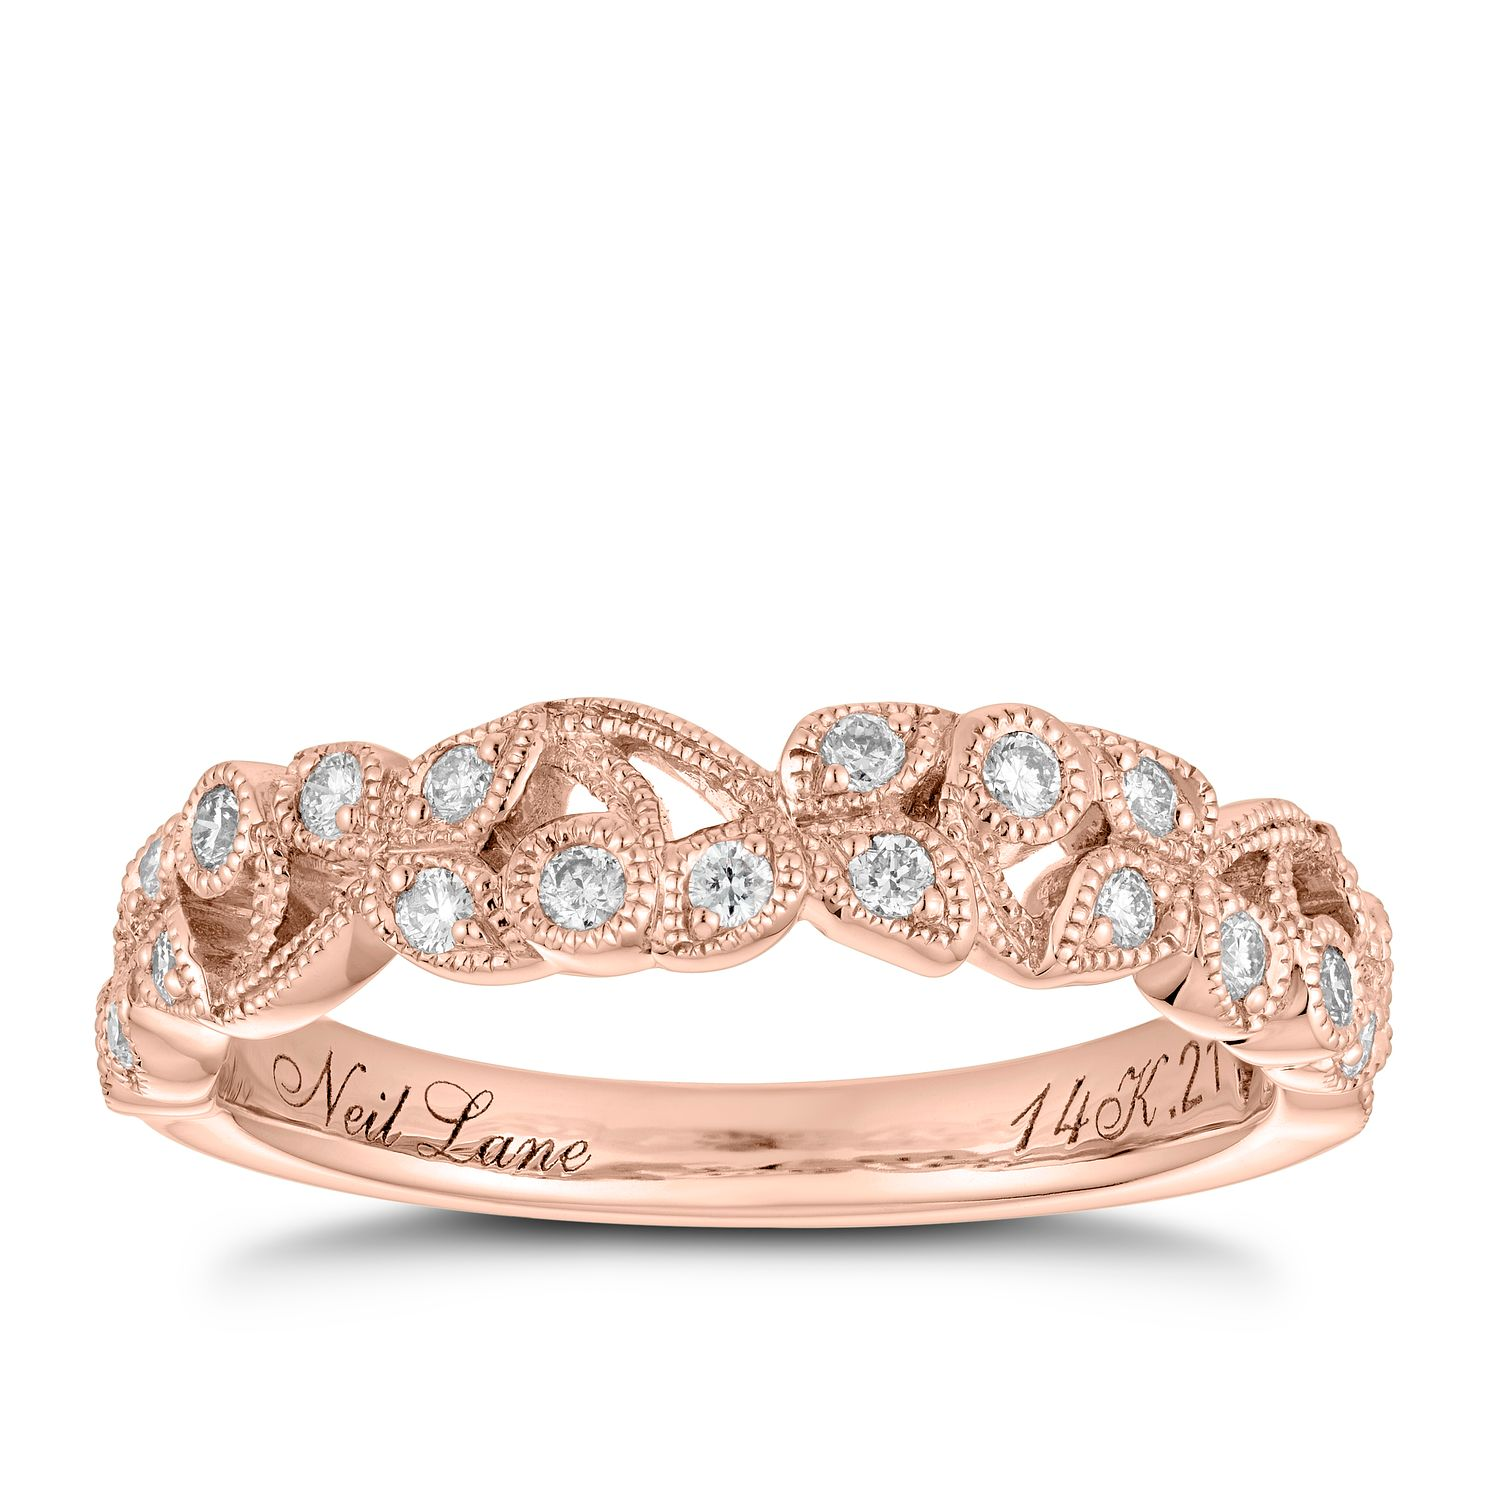 Neil Lane 14ct Rose Gold 0.21ct Diamond Vine Wedding Band - Product number 5025591